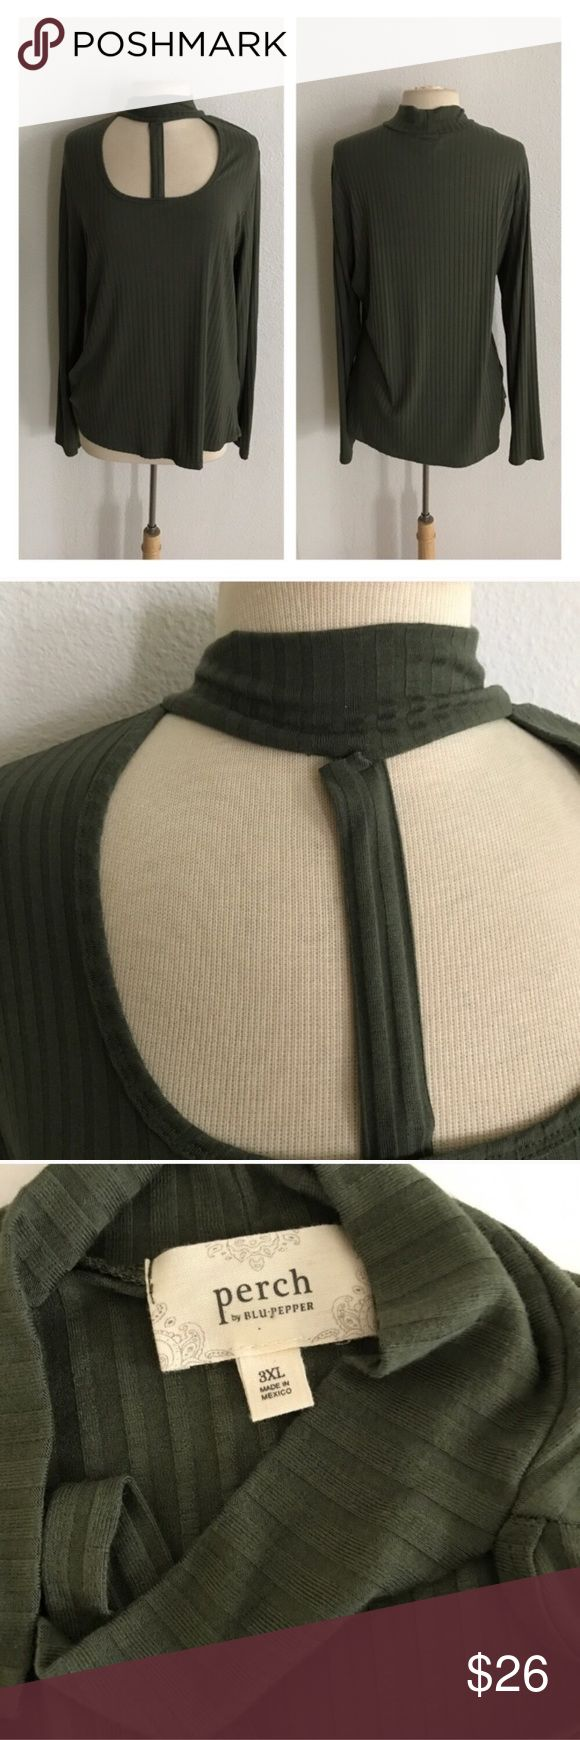 """NWOT Green strappy top *runs slightly small Strappy olive green top. Size 3x- runs slightly small and fits me perfectly as a 2x/16/18. Measures 28"""" long with a 42"""" bust. Super soft and very stretchy! Purchased by me from a local boutique and never worn. Brand new without tags. Please note: the strap has slightly separated from the neckline. It isn't visible when being worn, but it is slightly damaged.  💲Reasonable offers accepted ✅Bundle offers Blu Pepper Tops"""